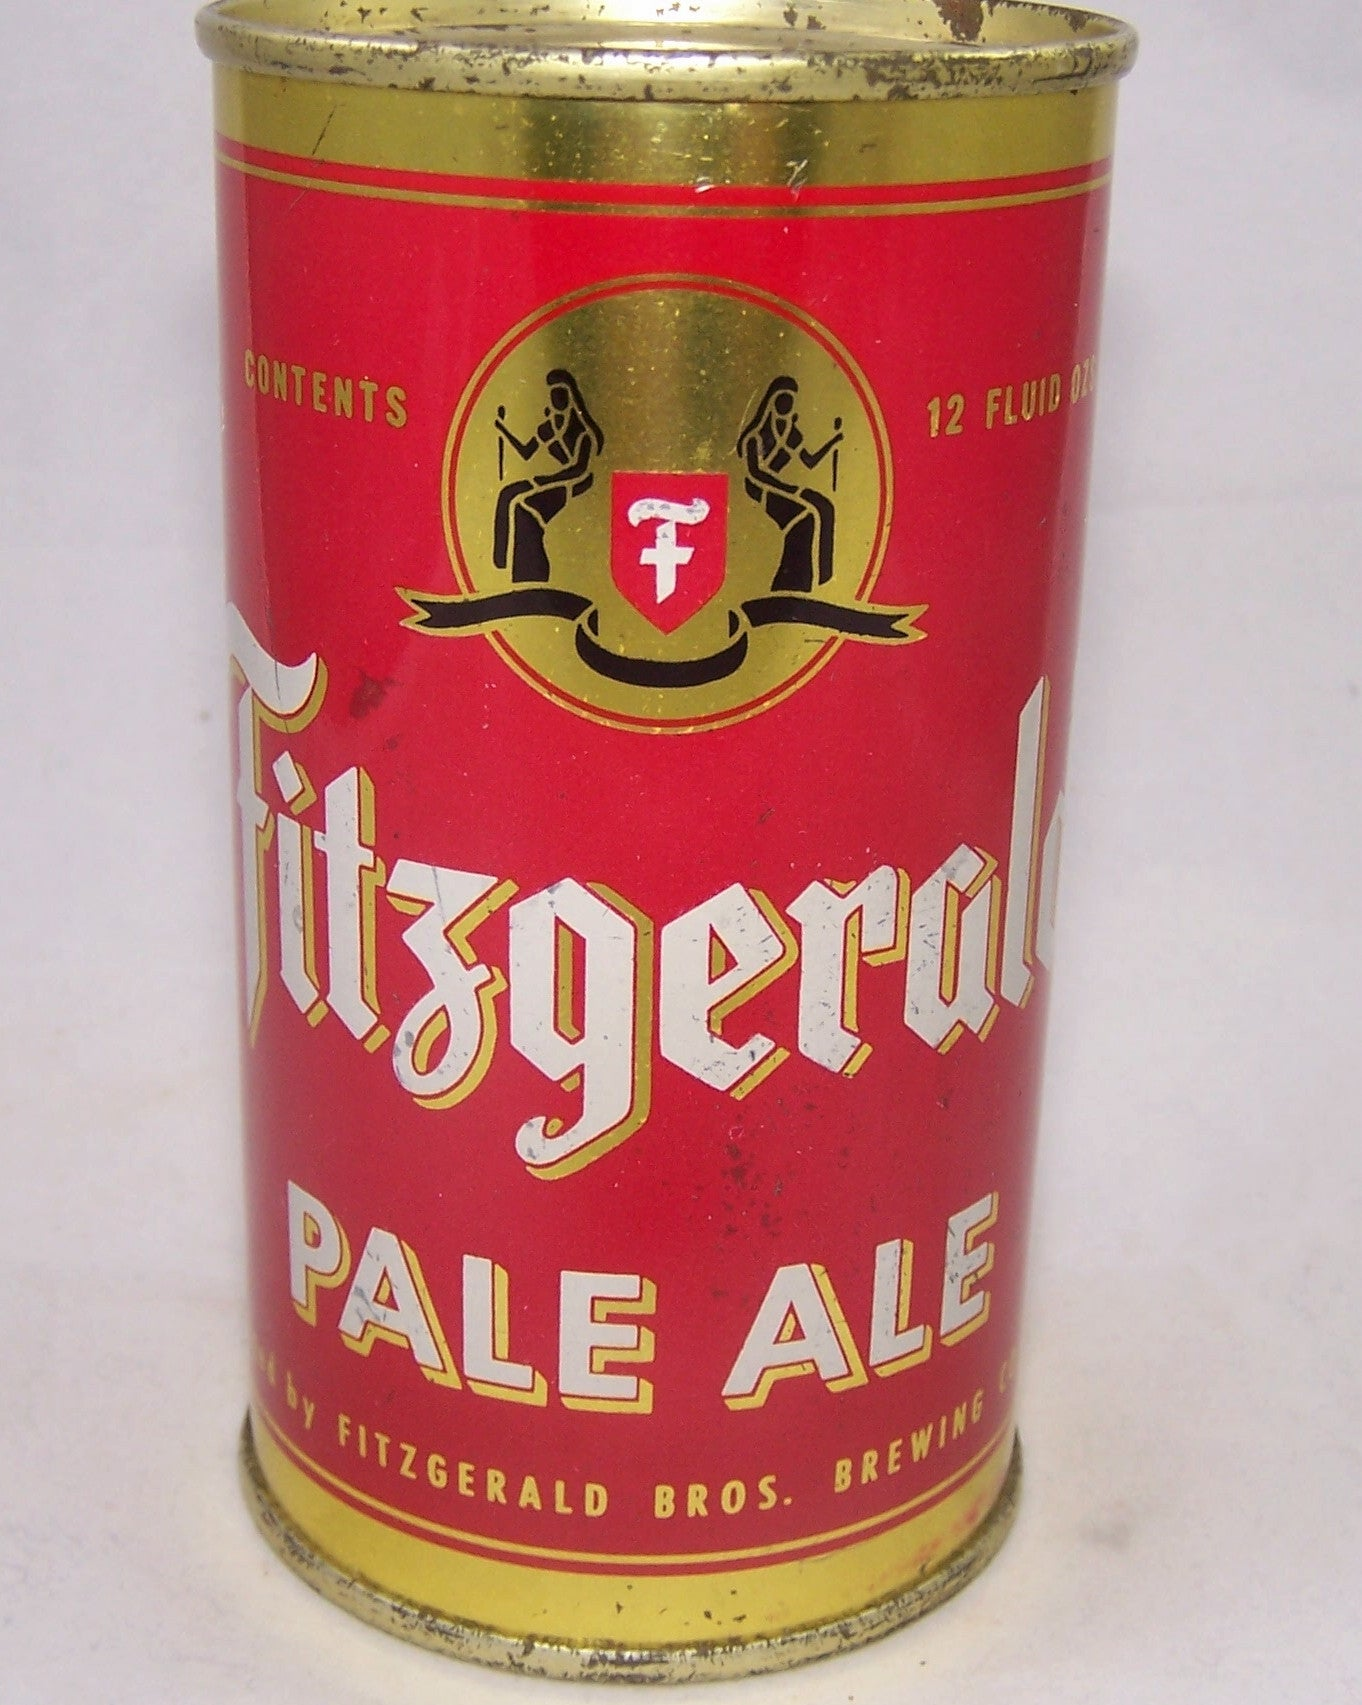 Fitzgerald Pale Ale (Blue Shield) USBC 64-15, Grade 1 to 1/1+ Sold on 04/06/19